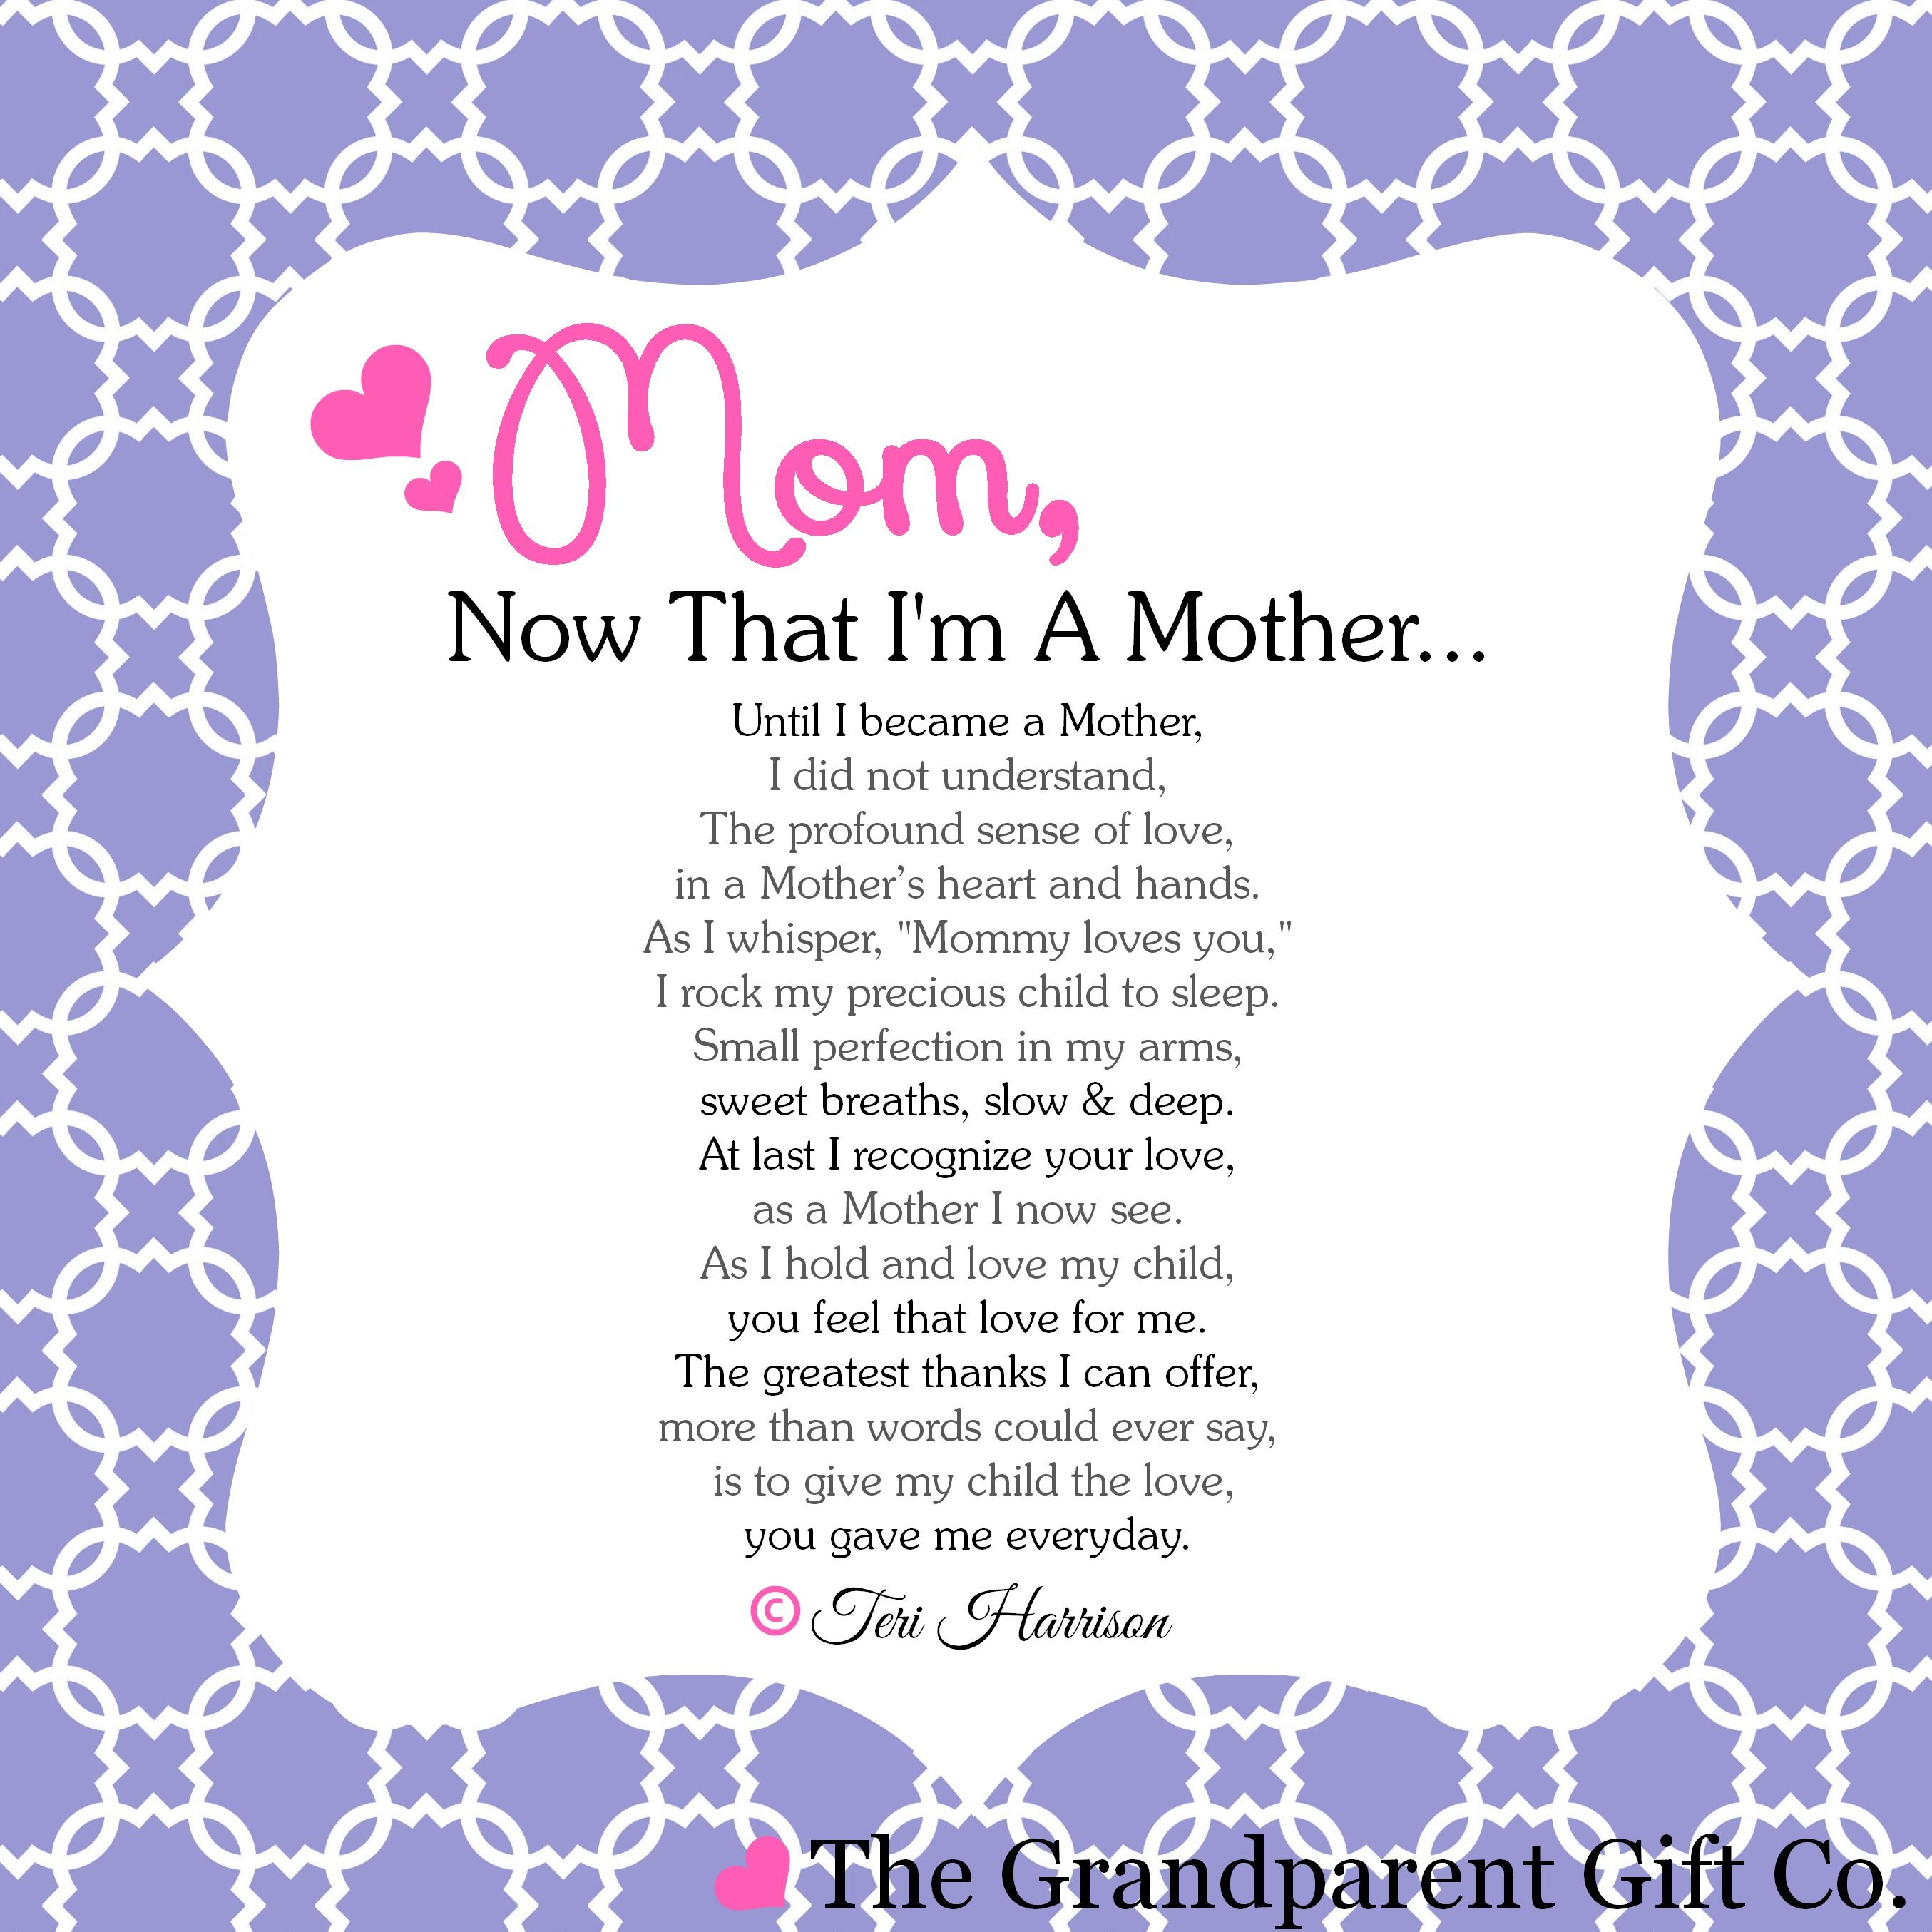 The Grandparent Gift Co. has a great selection of ...